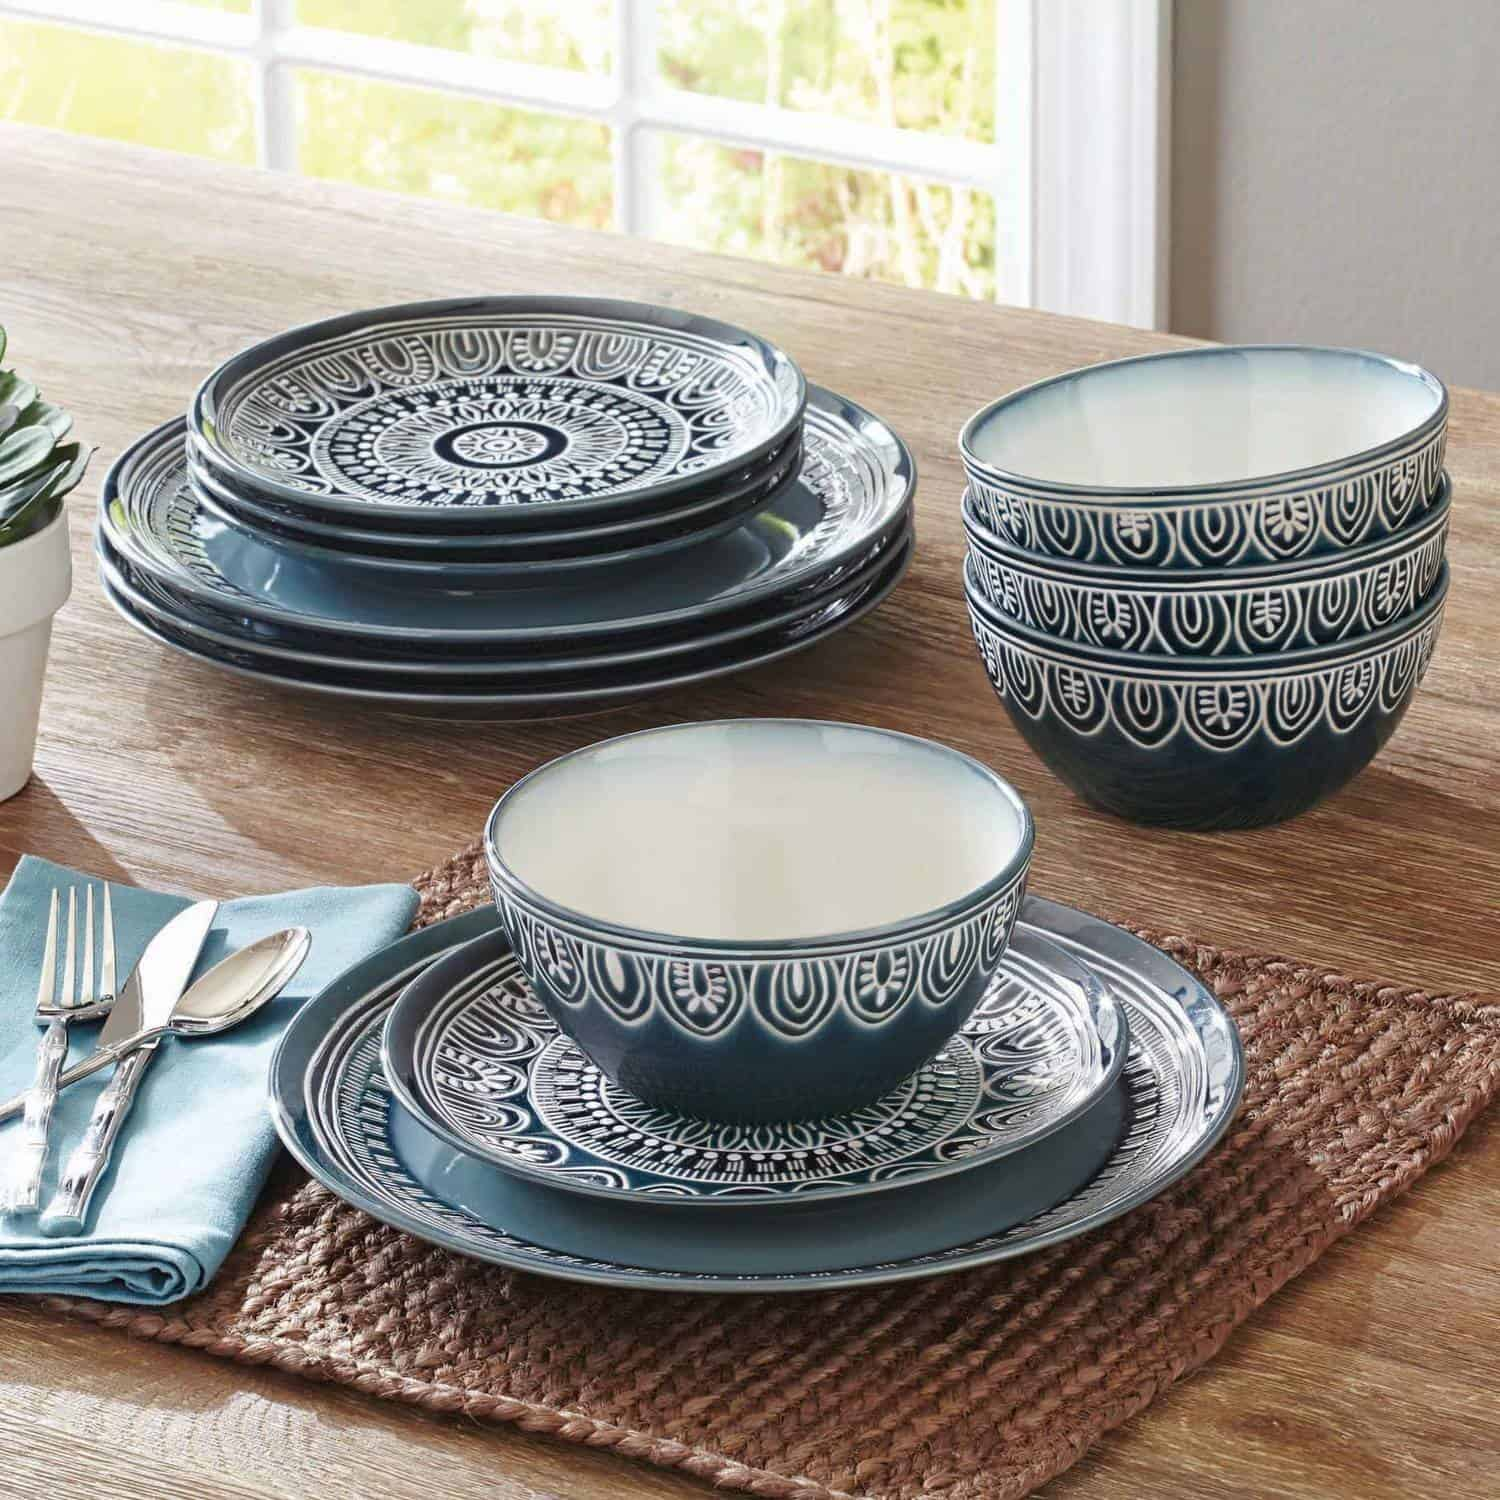 Q: What exactly is stoneware, anyway?